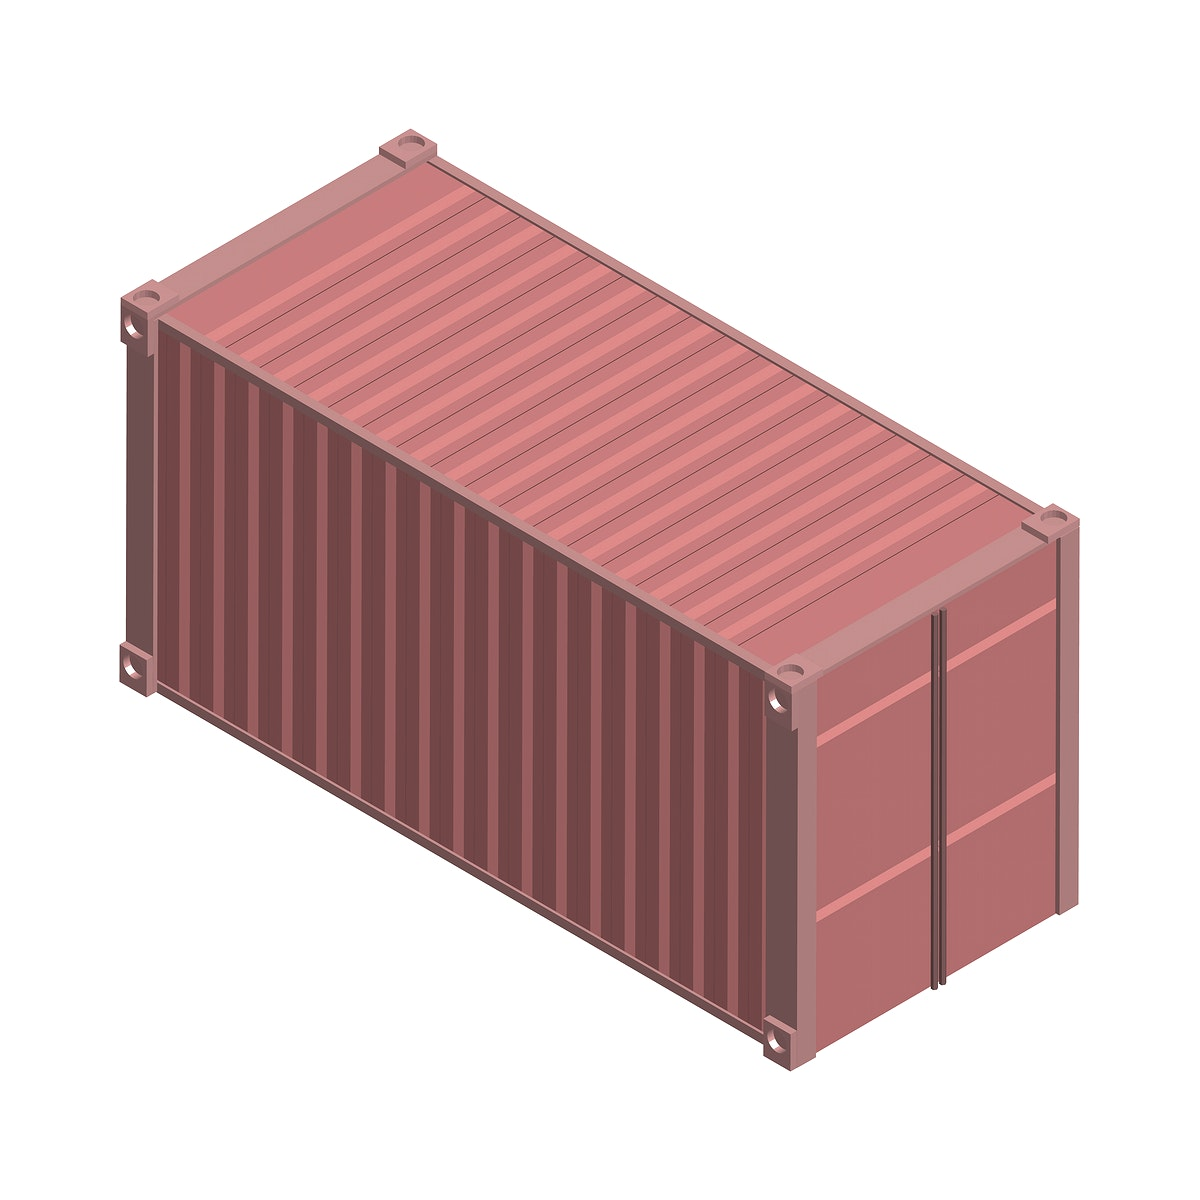 Metal square container isolated on background